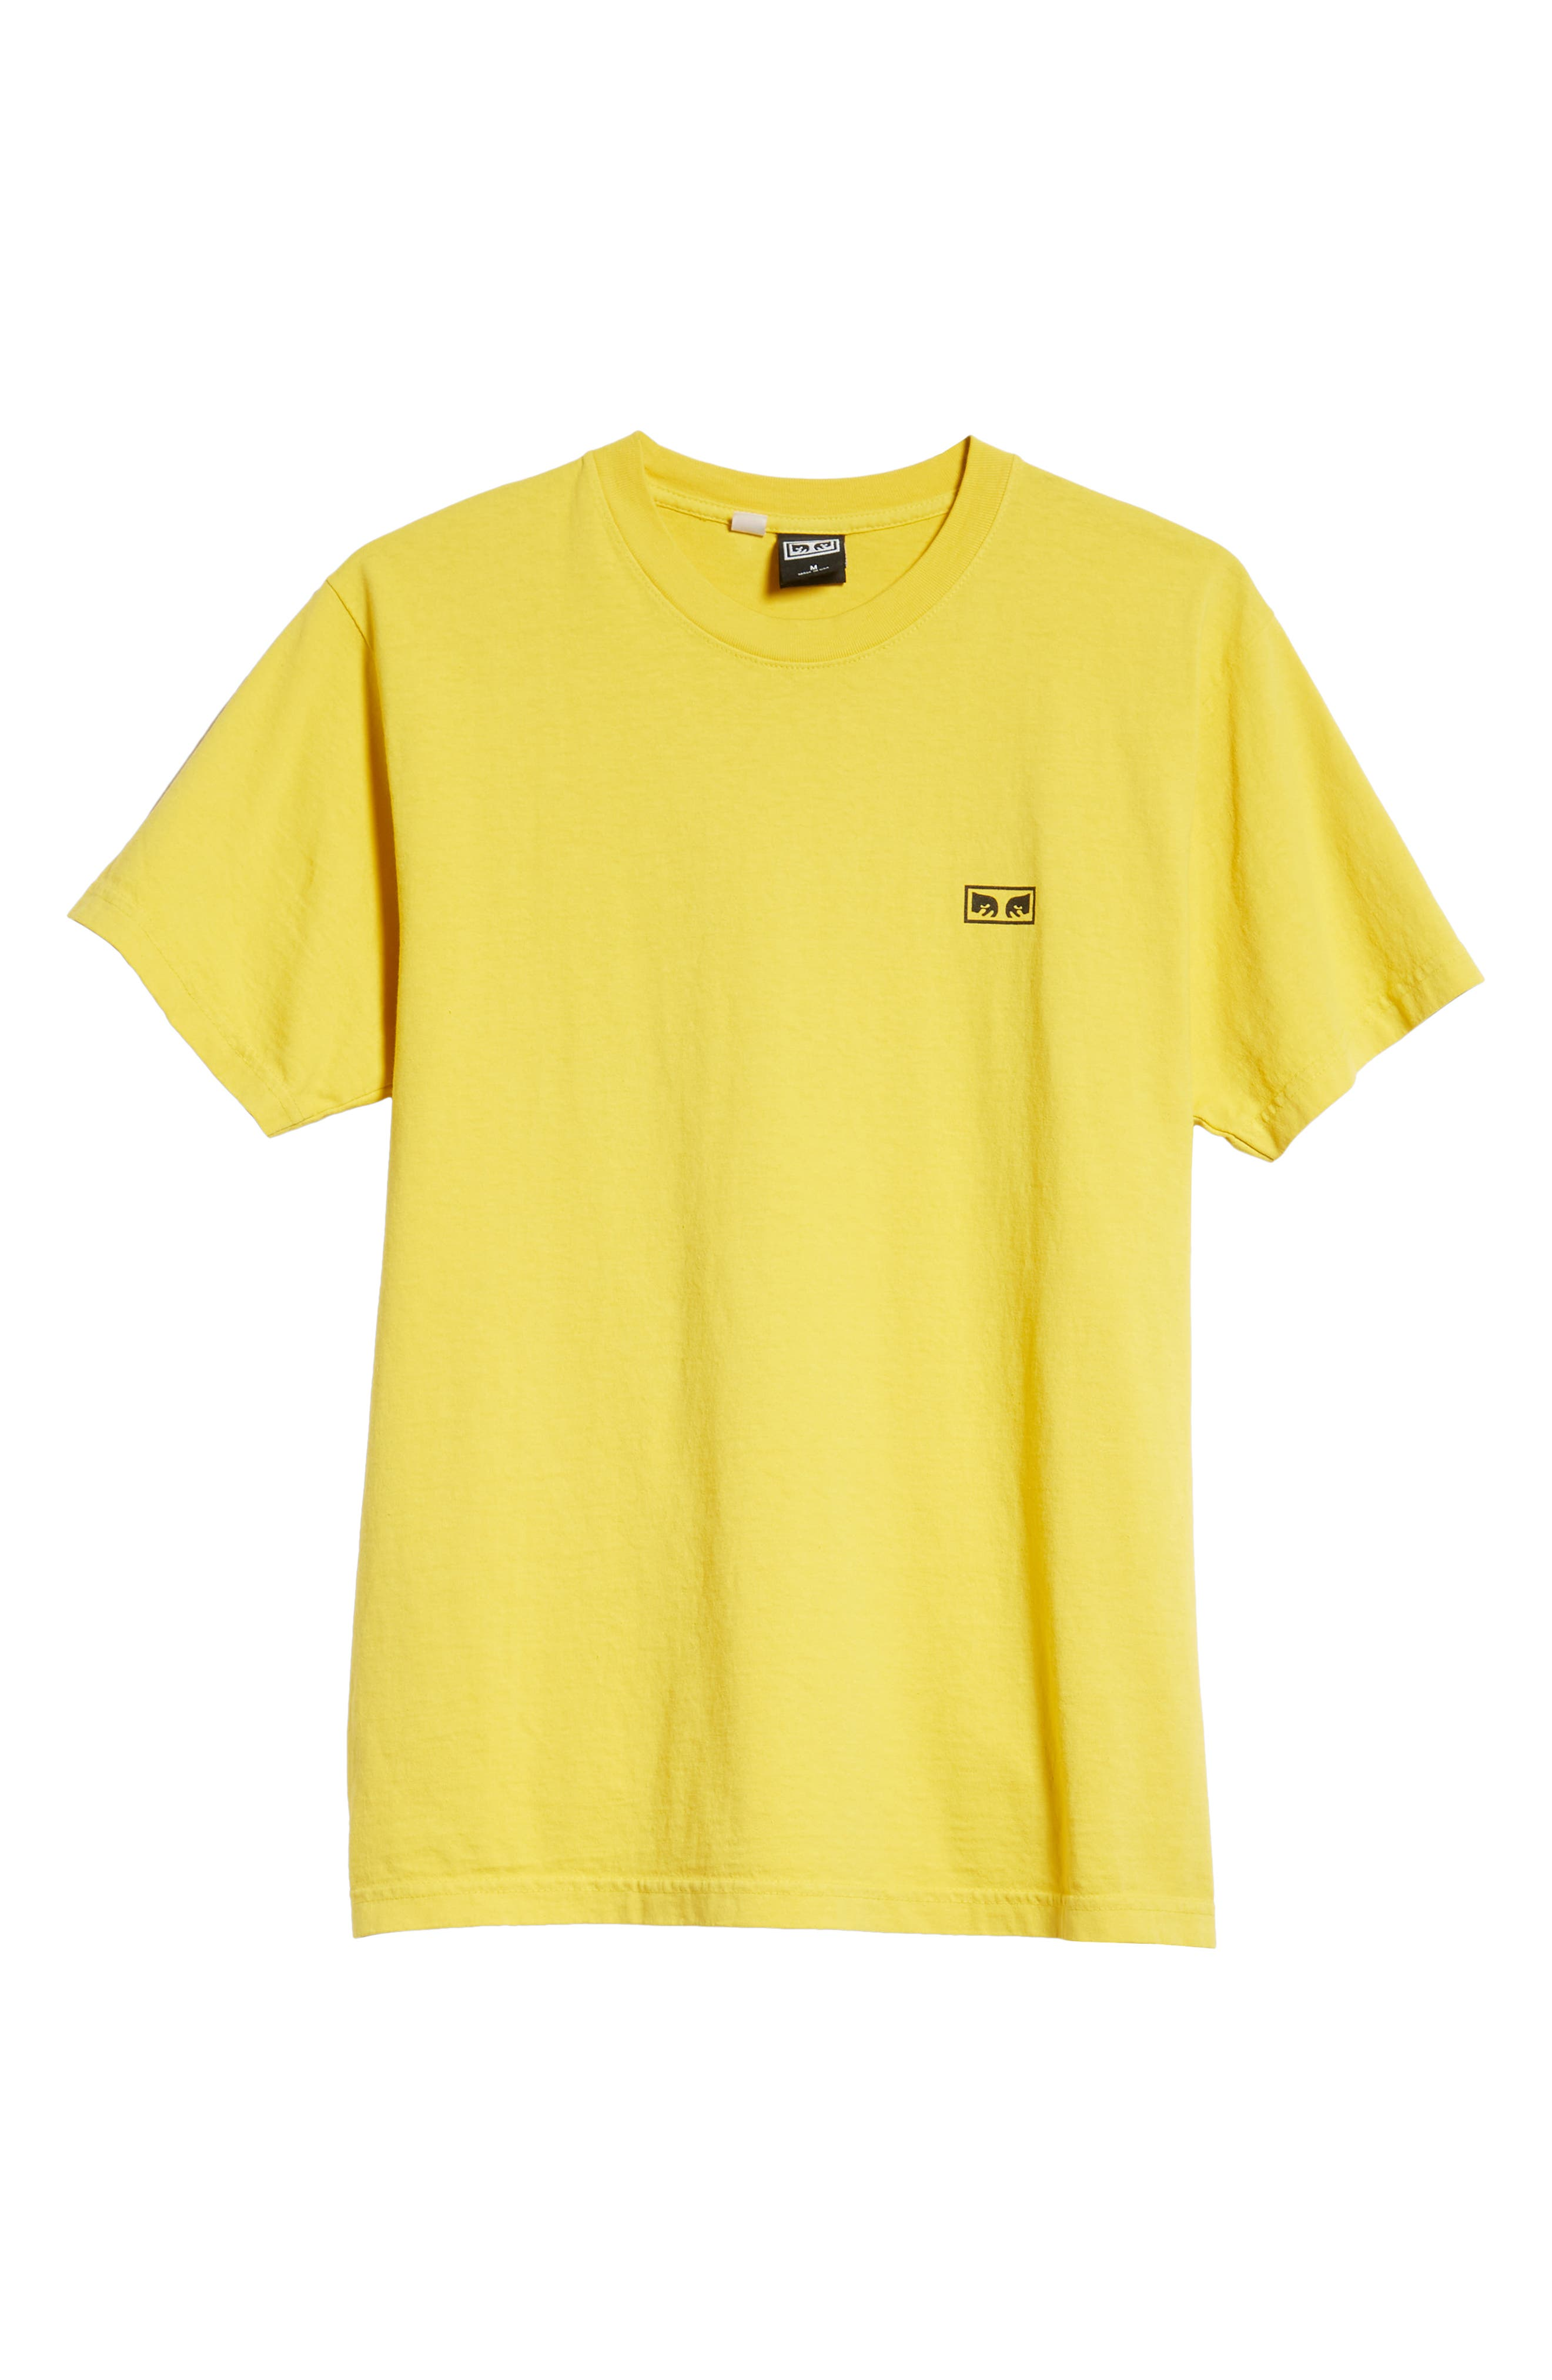 No One Box T-Shirt,                             Alternate thumbnail 6, color,                             SPECTRA YELLOW